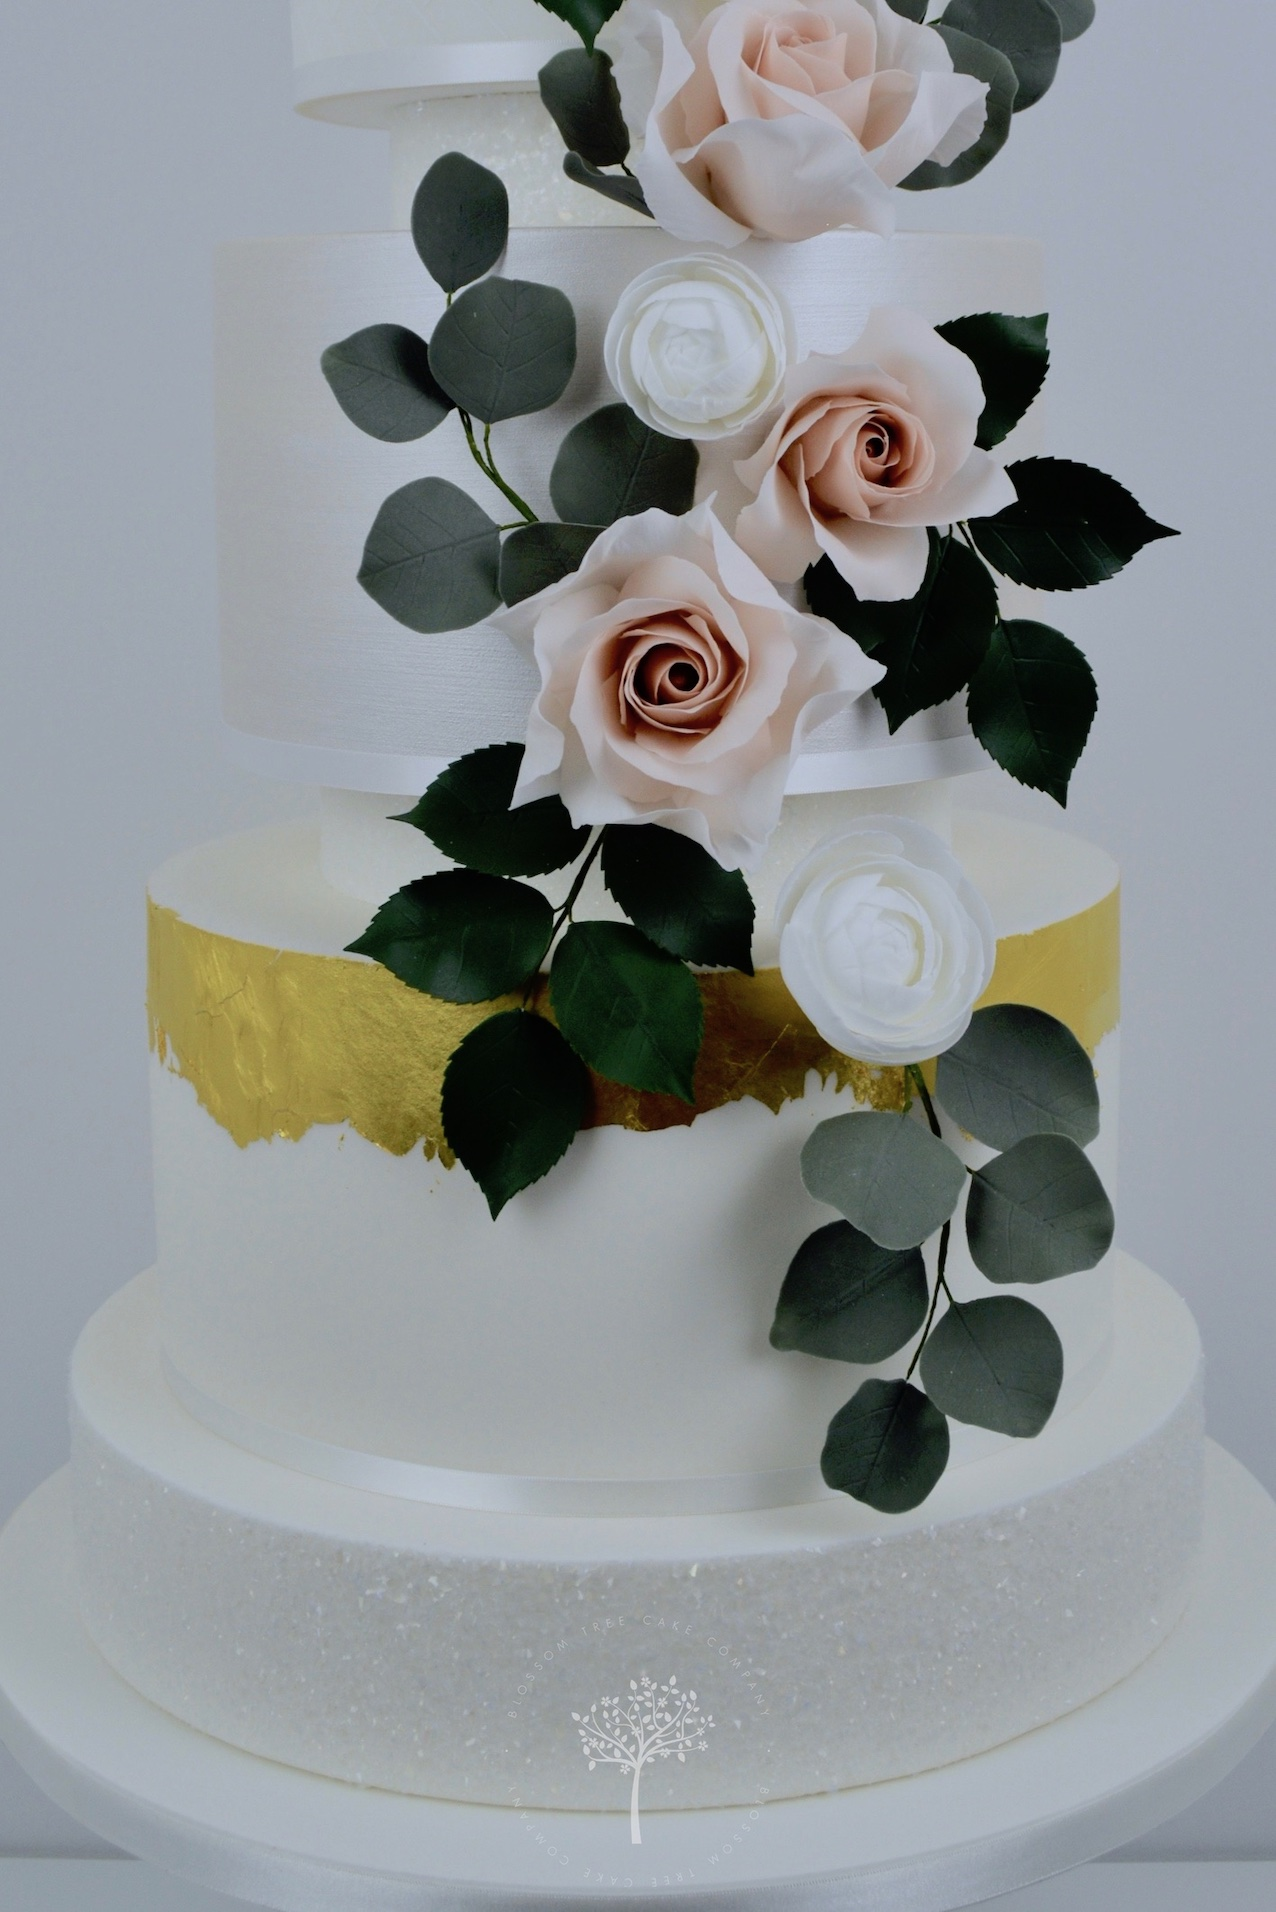 Rose & Ranunculus Cascade wedding cake by Blossom Tree Cake Company Harrogate North Yorkshire - sugar roses and ranunculus.jpg